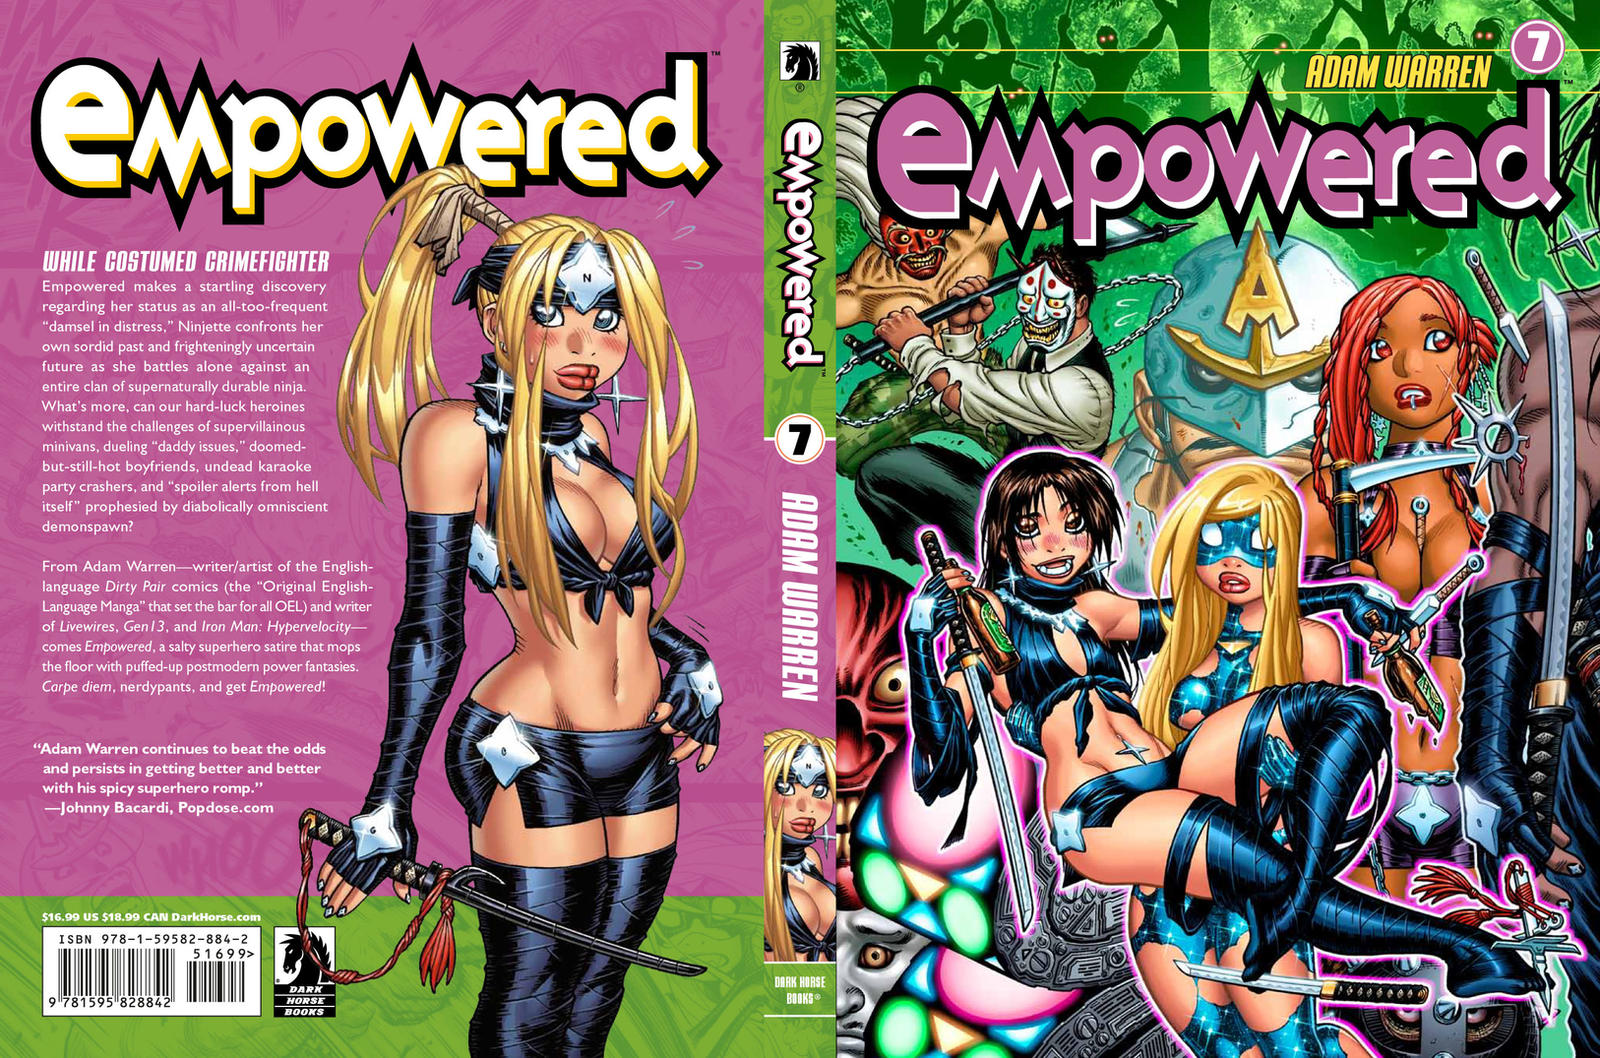 EMPOWERED 7's front + back covers by AdamWarren